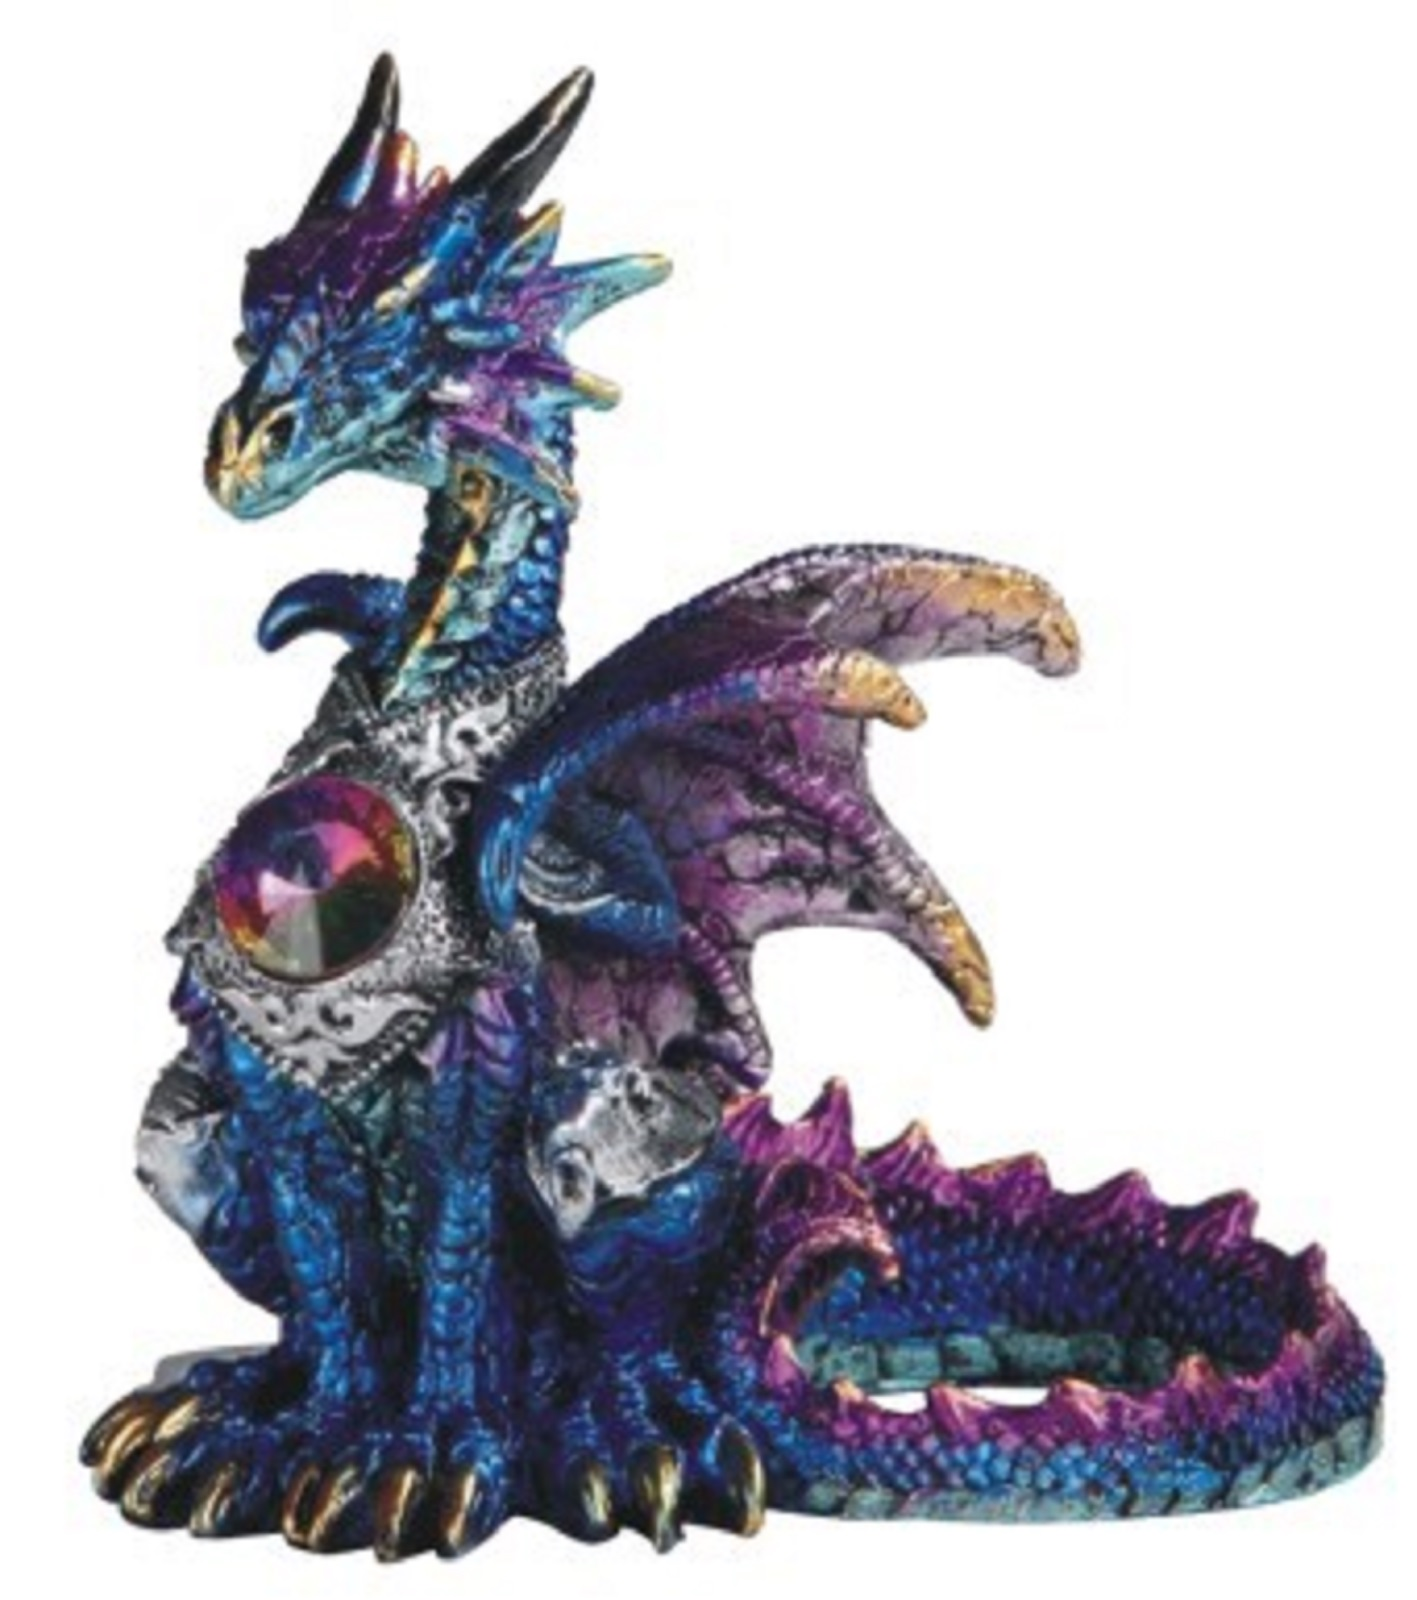 Blue Dragon with Gem Statuette Figurine Mythical Fantasy Collectible Decoration by Home and Holiday Shops